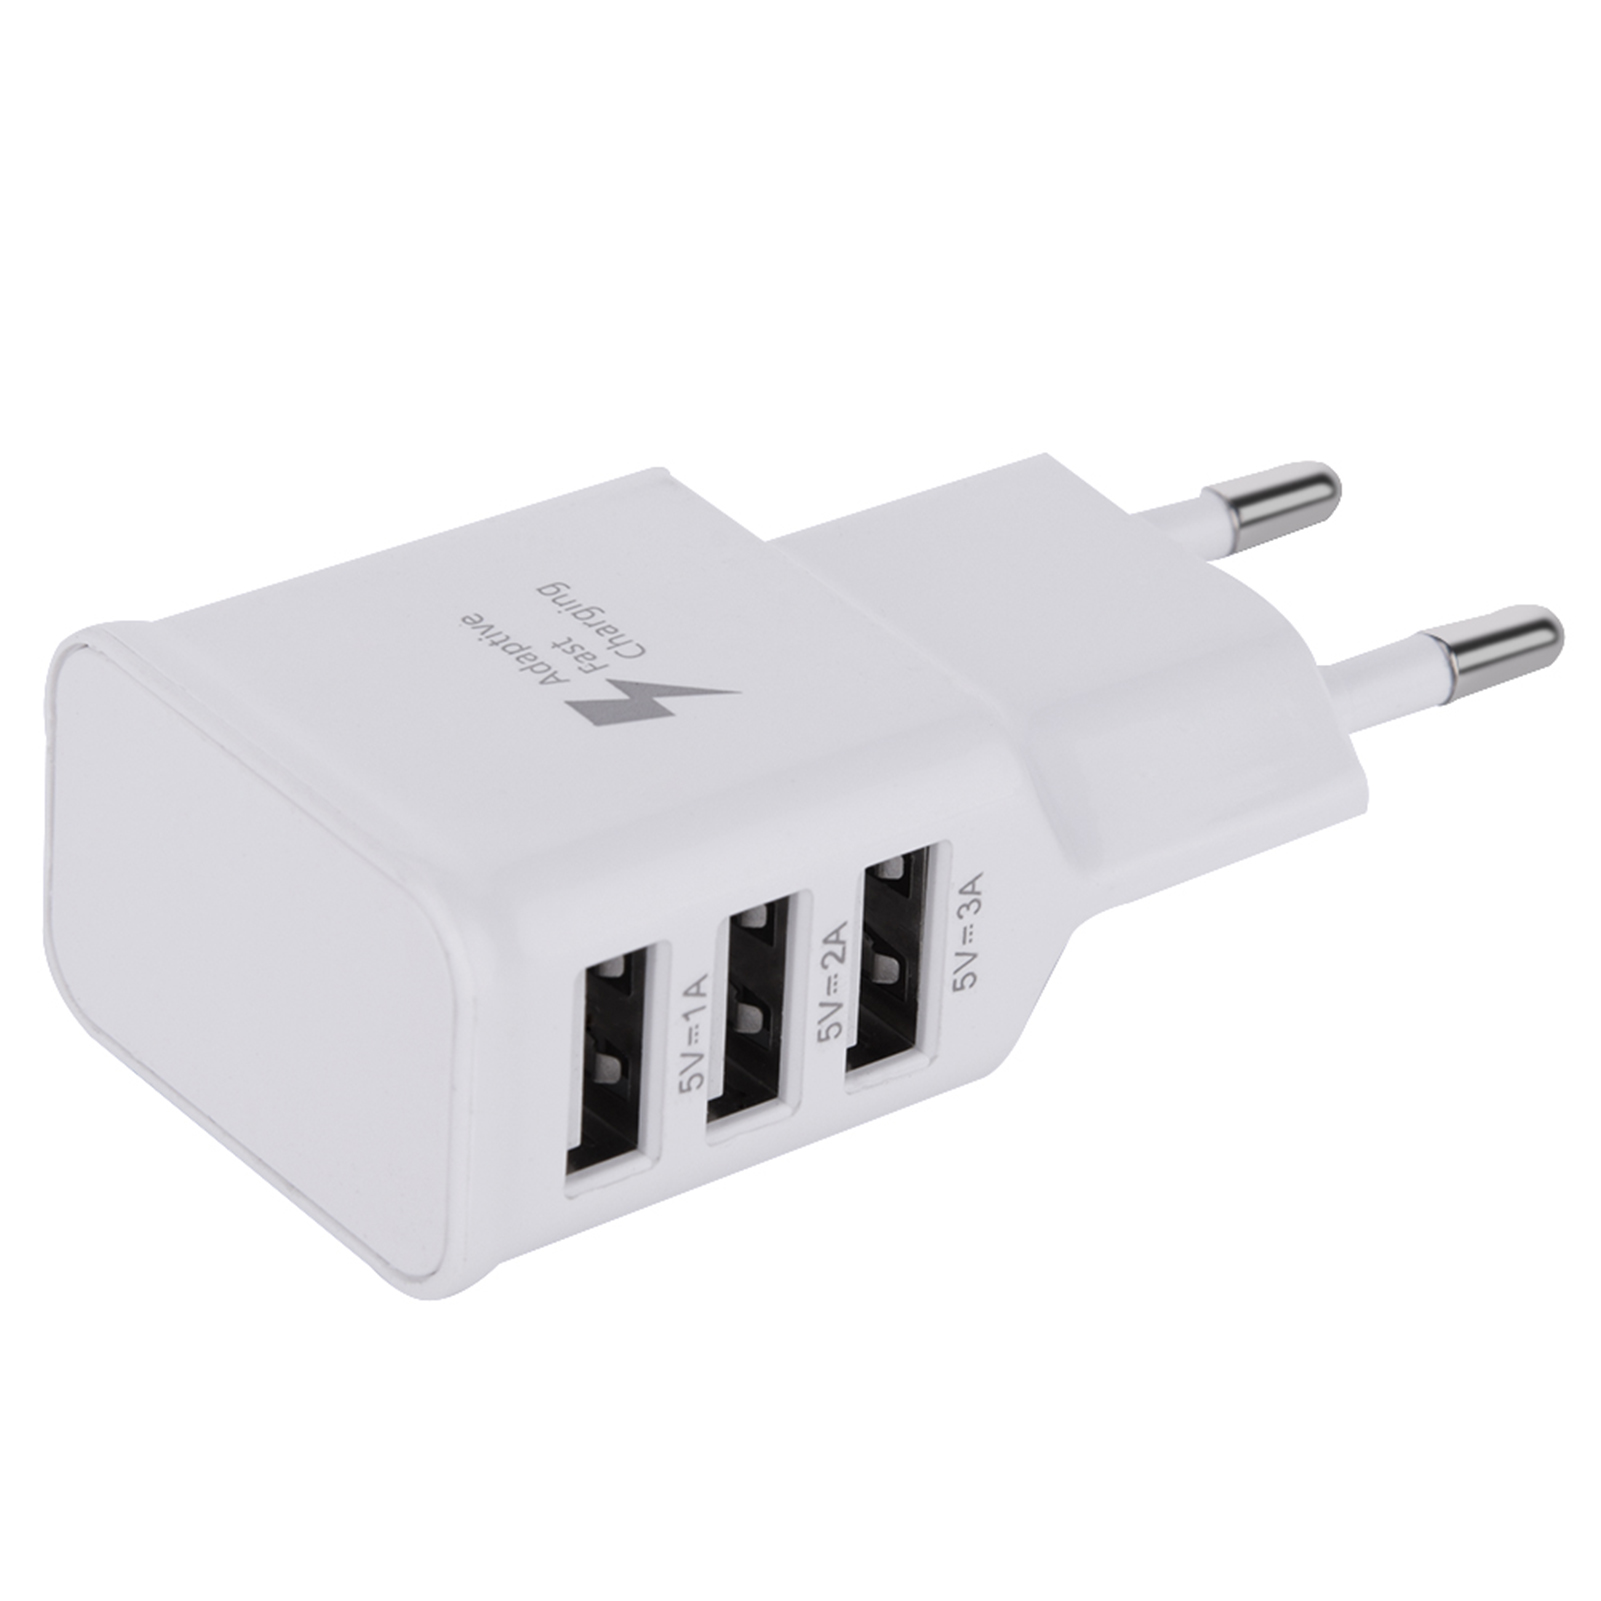 universal 3 port usb wall charger adapter ladeger t f r smartphone eu stecker ge ebay. Black Bedroom Furniture Sets. Home Design Ideas